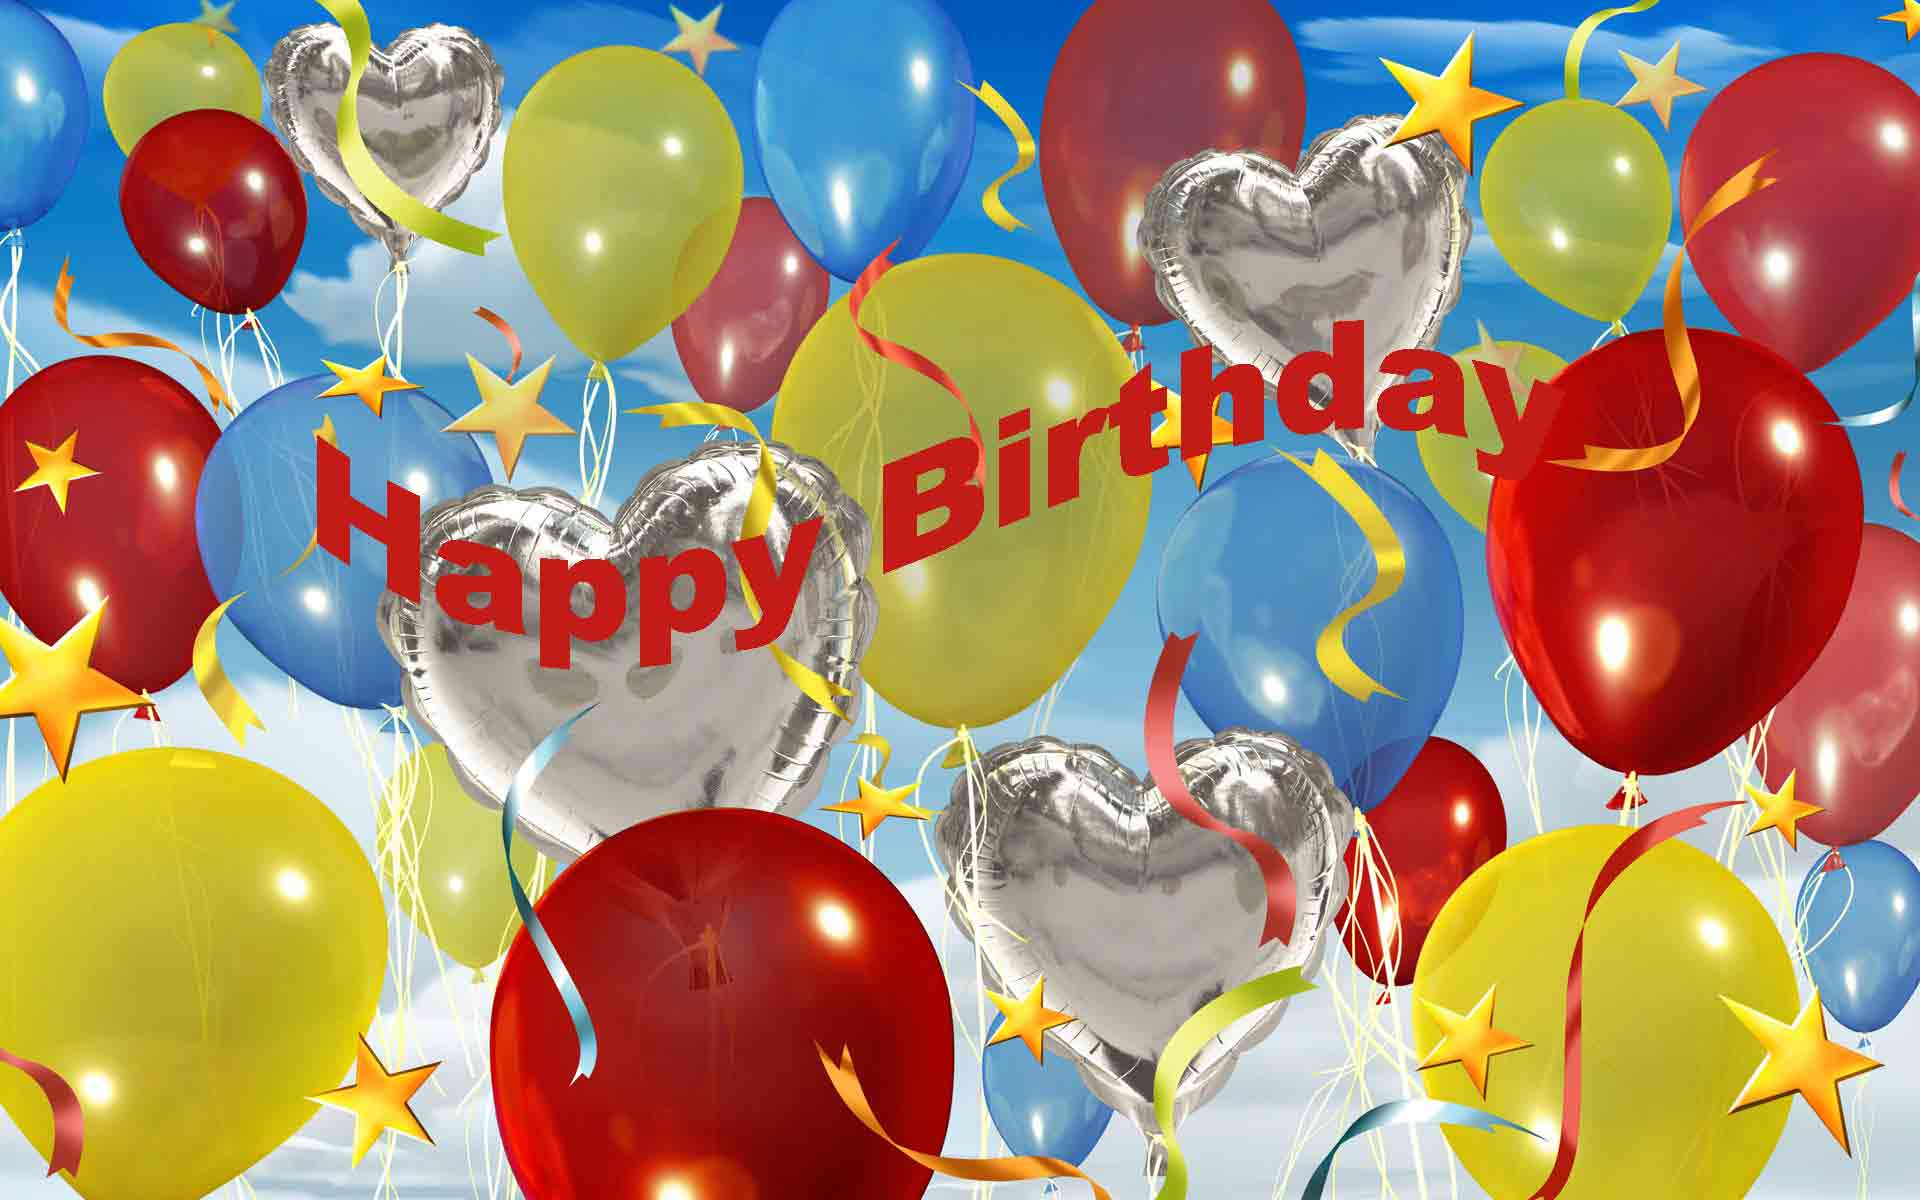 Lovely and Interesting Birthday Quotes That Can Make Your Friend Smile 3